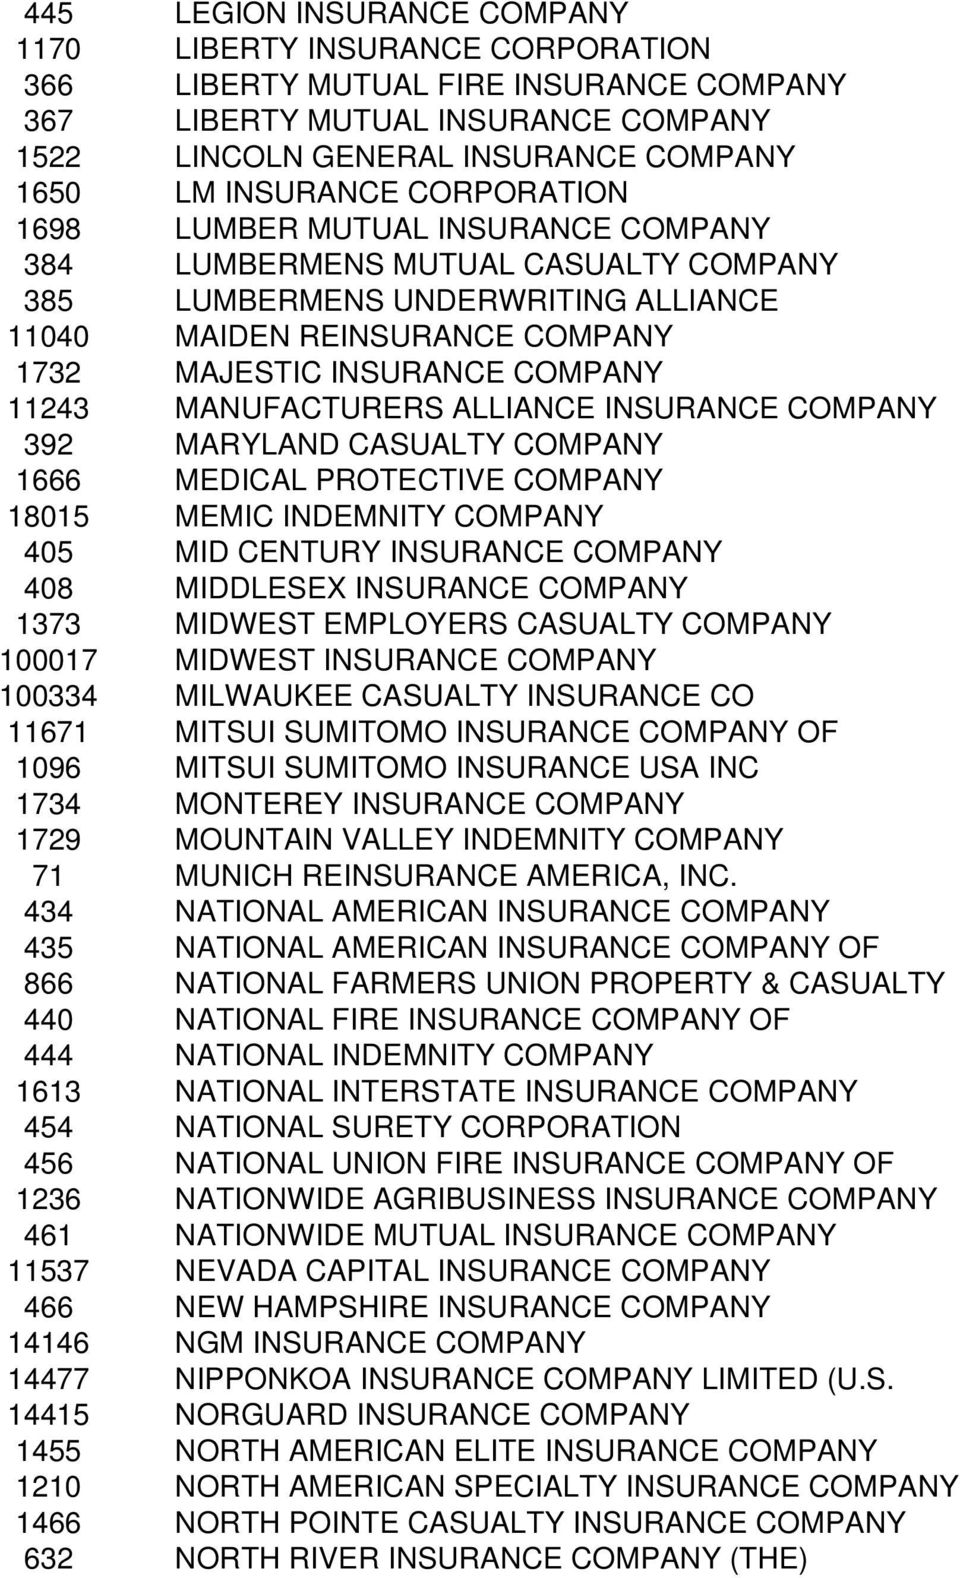 MANUFACTURERS ALLIANCE INSURANCE COMPANY 392 MARYLAND CASUALTY COMPANY 1666 MEDICAL PROTECTIVE COMPANY 18015 MEMIC INDEMNITY COMPANY 405 MID CENTURY INSURANCE COMPANY 408 MIDDLESEX INSURANCE COMPANY